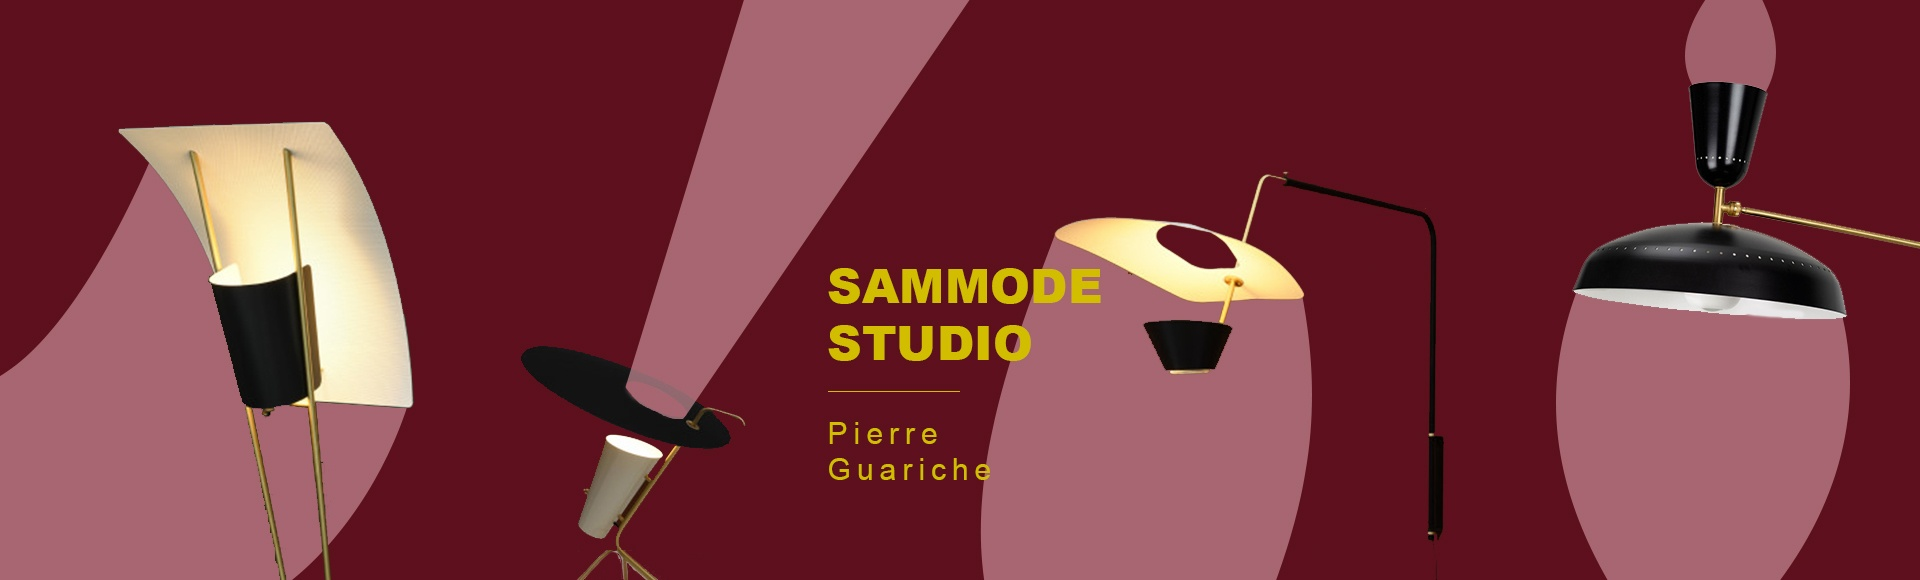 SAMMODE PIERRE GUARICHE